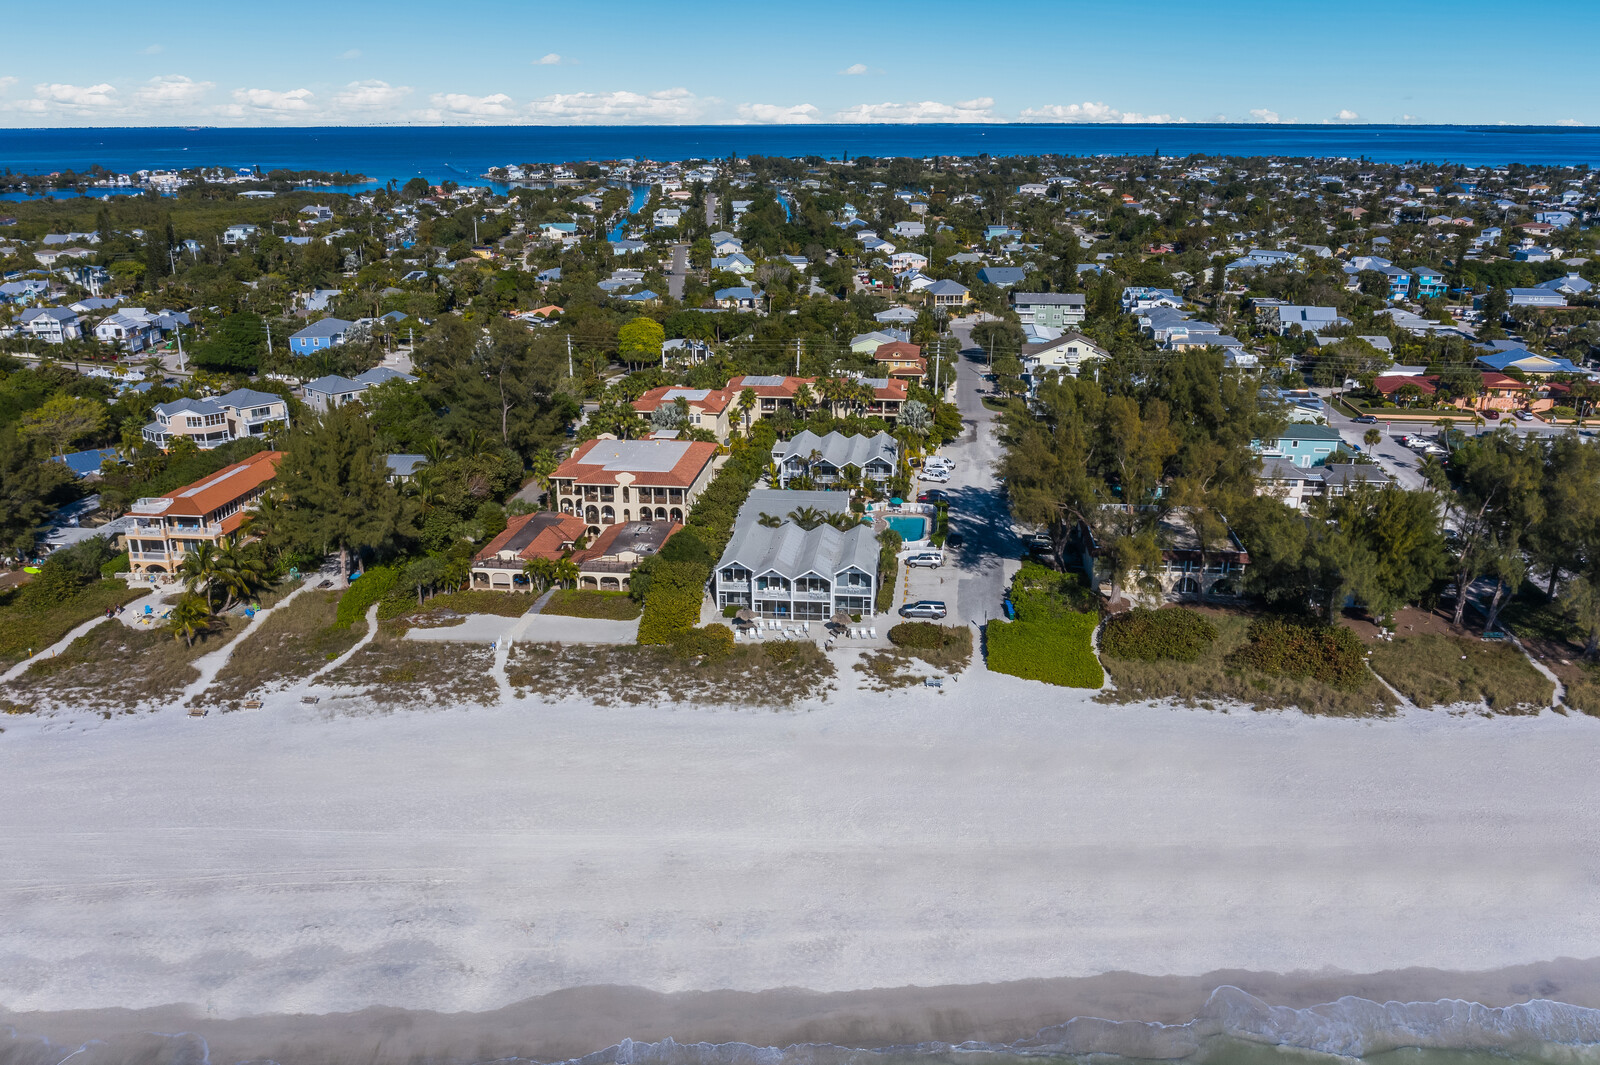 Aerial of 73rd st beach